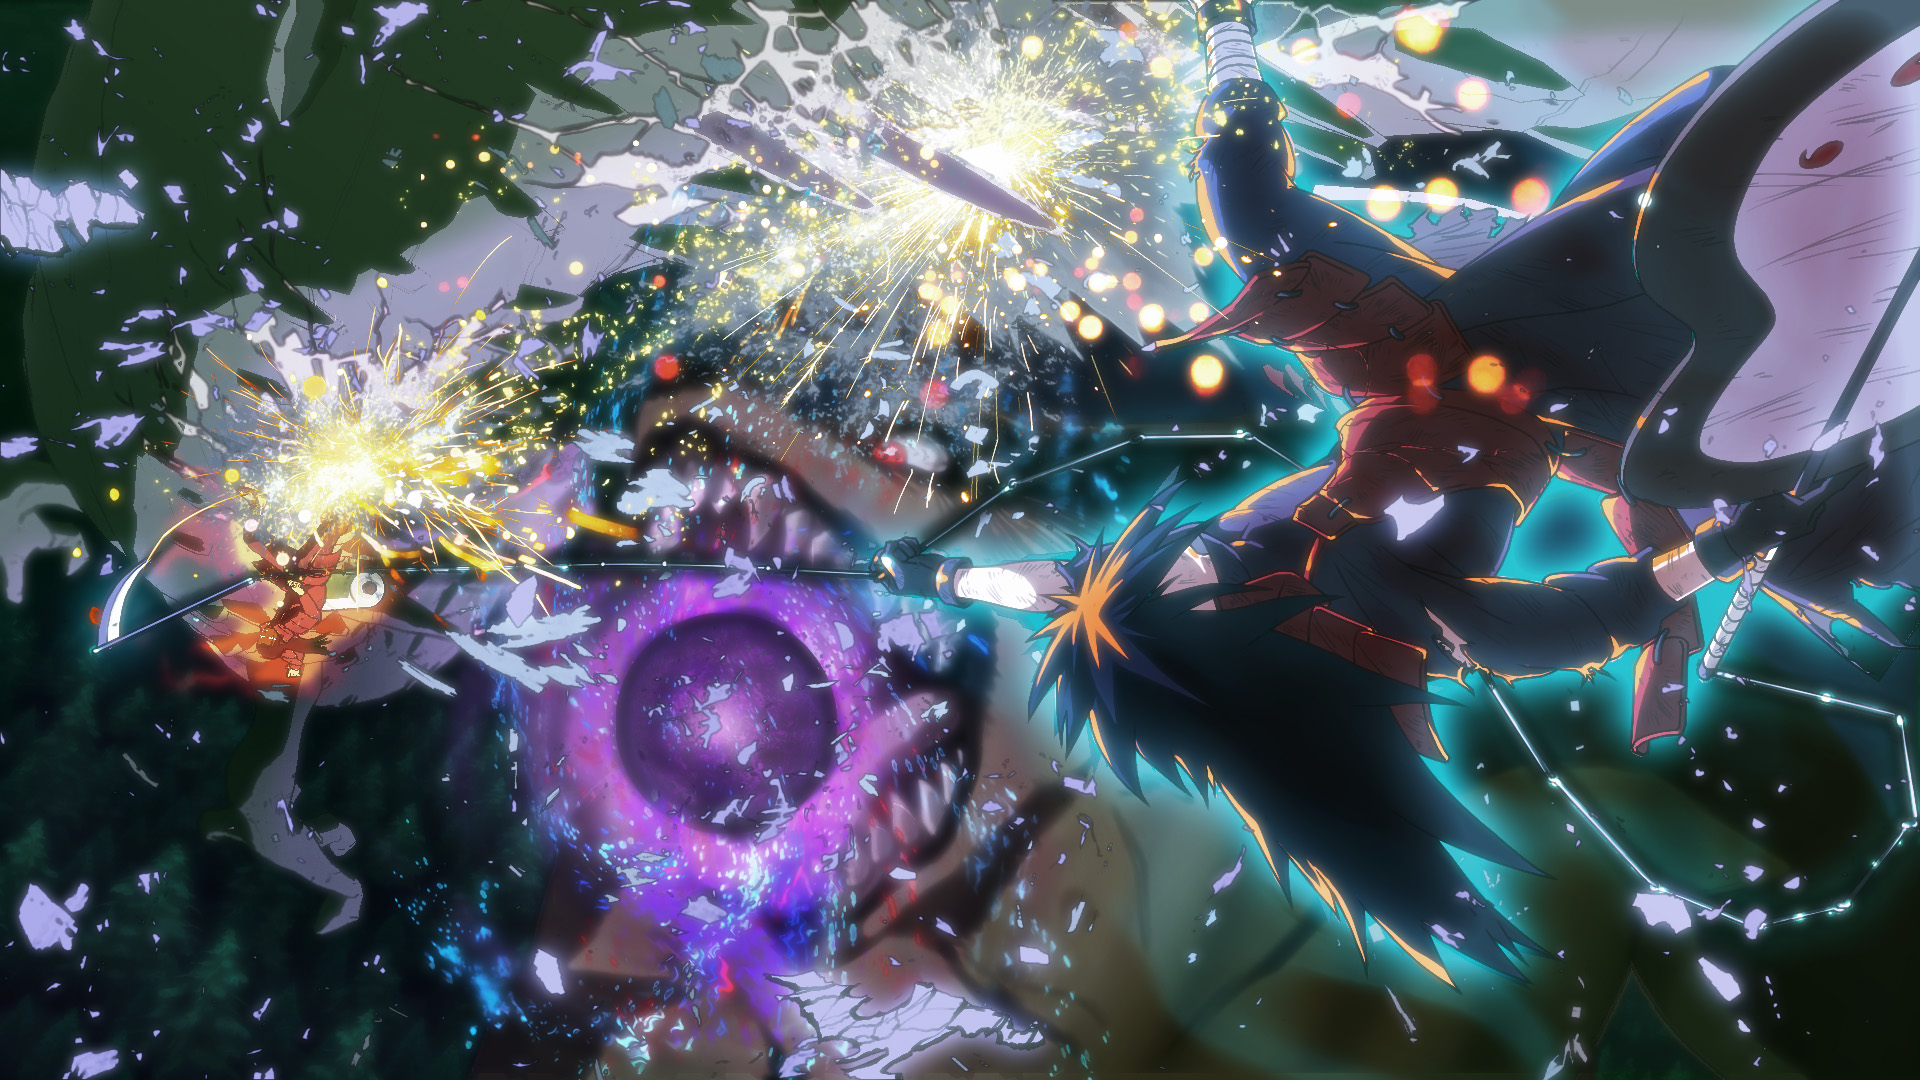 Naruto Shippuden: Ultimate Ninja Storm 4 Revived Madara Uchiha fight screenshot